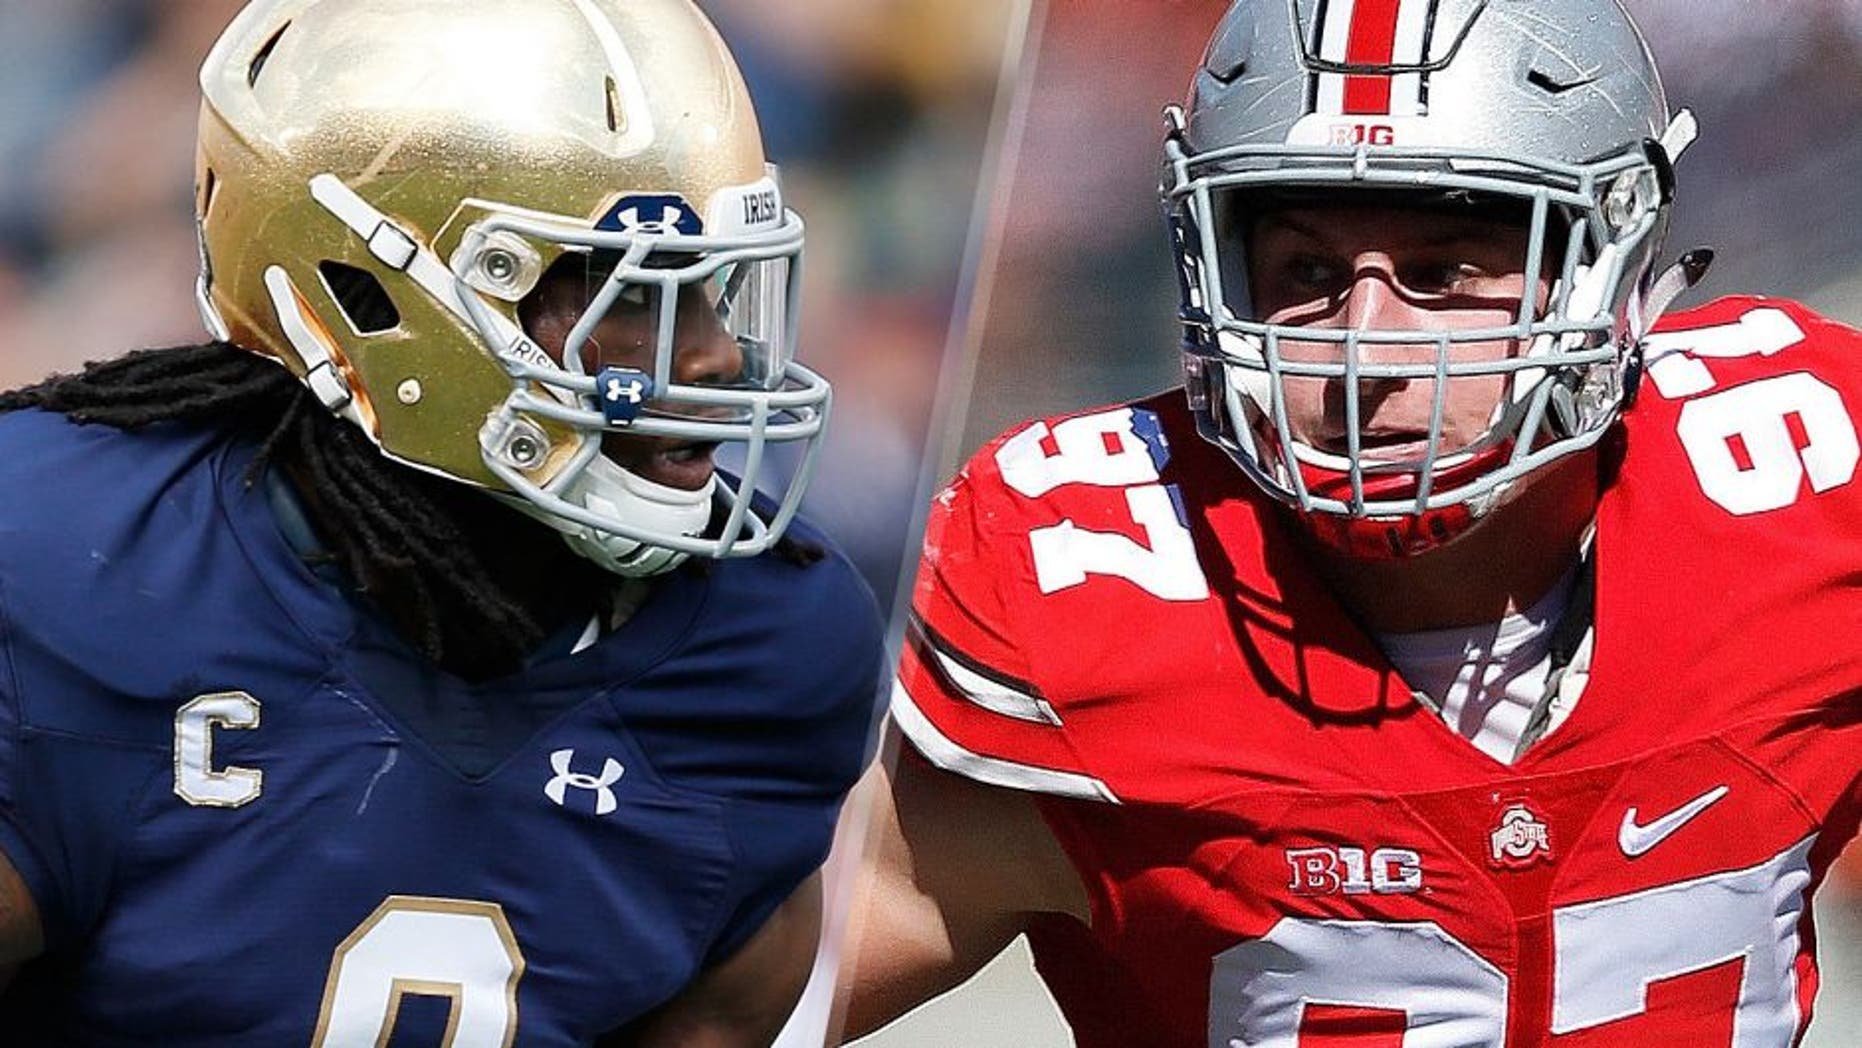 Jaylon Smith #9 of the Notre Dame Fighting Irish in action against the Georgia Tech Yellow Jackets during the game at Notre Dame Stadium on September 19, 2015 in South Bend, Indiana. Notre Dame defeated Georgia Tech 30-22. (Photo by Joe Robbins/Getty Images) Joey Bosa #97 of the Ohio State Buckeyes in action against the Maryland Terrapins during a game at Ohio Stadium on October 10, 2015 in Columbus, Ohio. The Buckeyes defeated the Terrapins 49-28. (Photo by Joe Robbins/Getty Images)